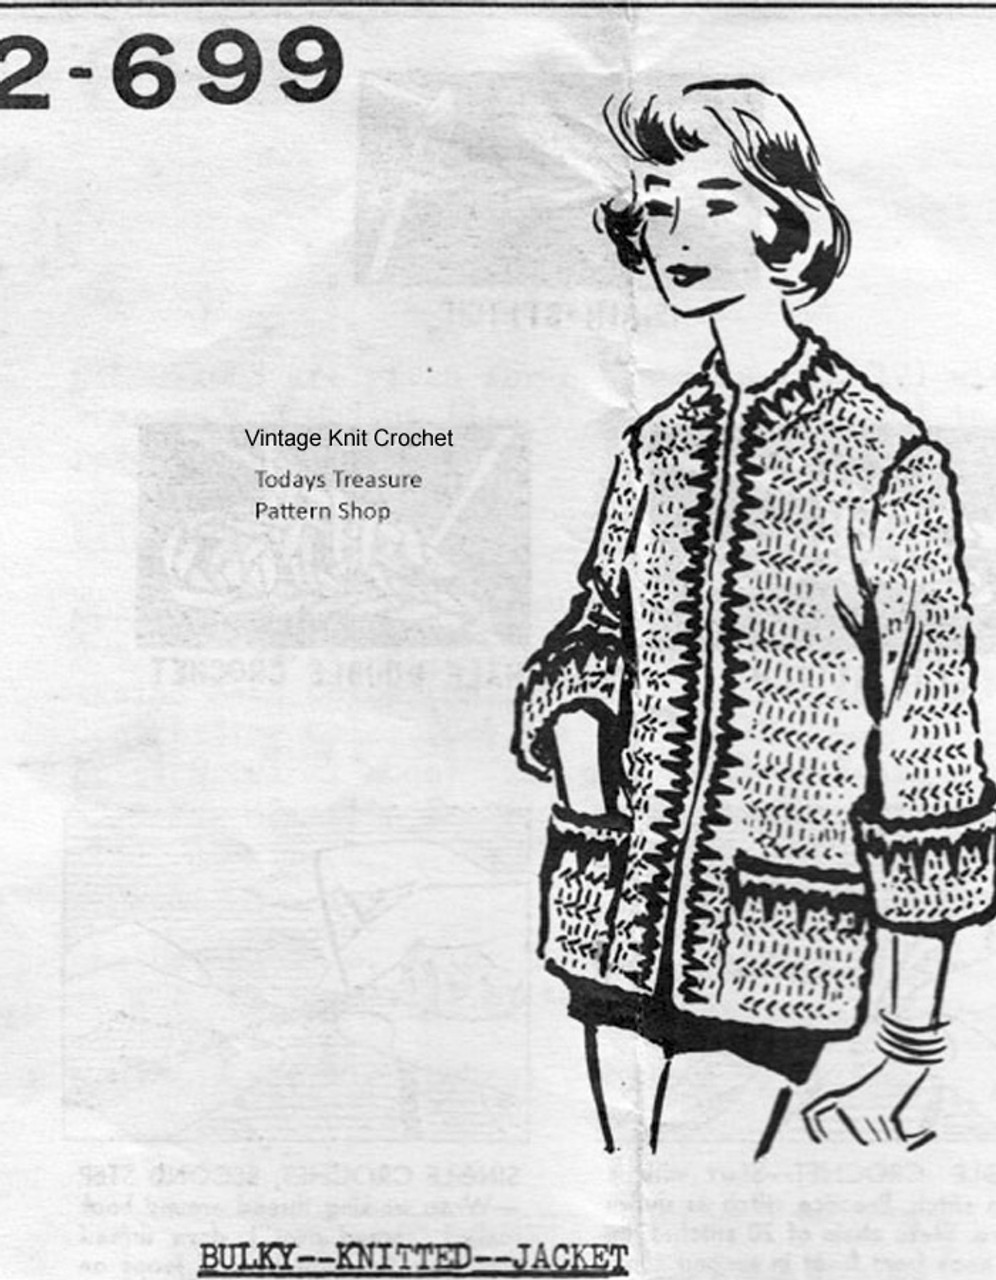 Long Bulky Knitted Jacket Pattern, Mail Order 2699